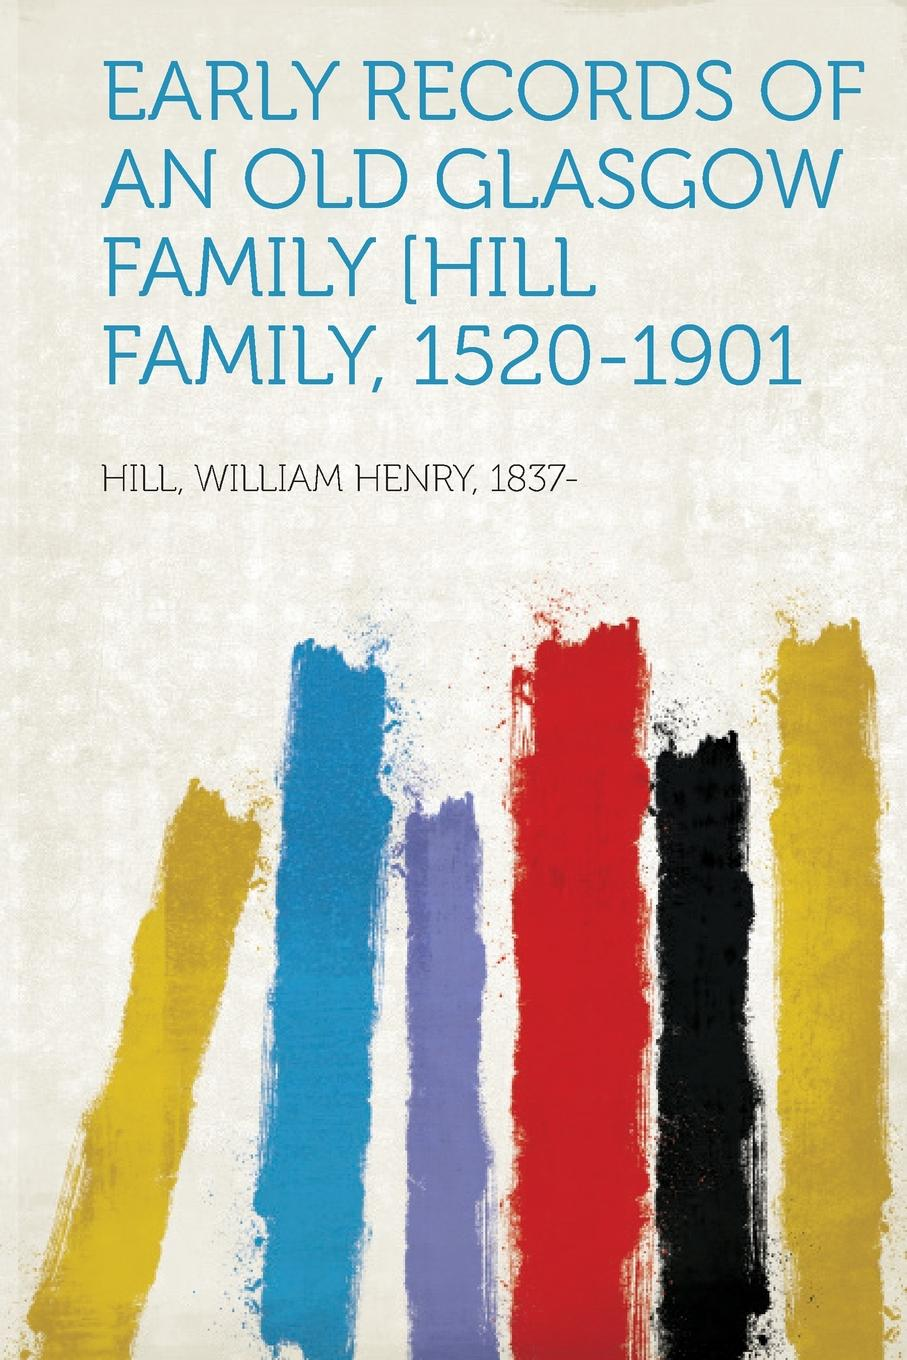 Hill William Henry 1837- Early Records of an Old Glasgow Family .Hill Family, 1520-1901